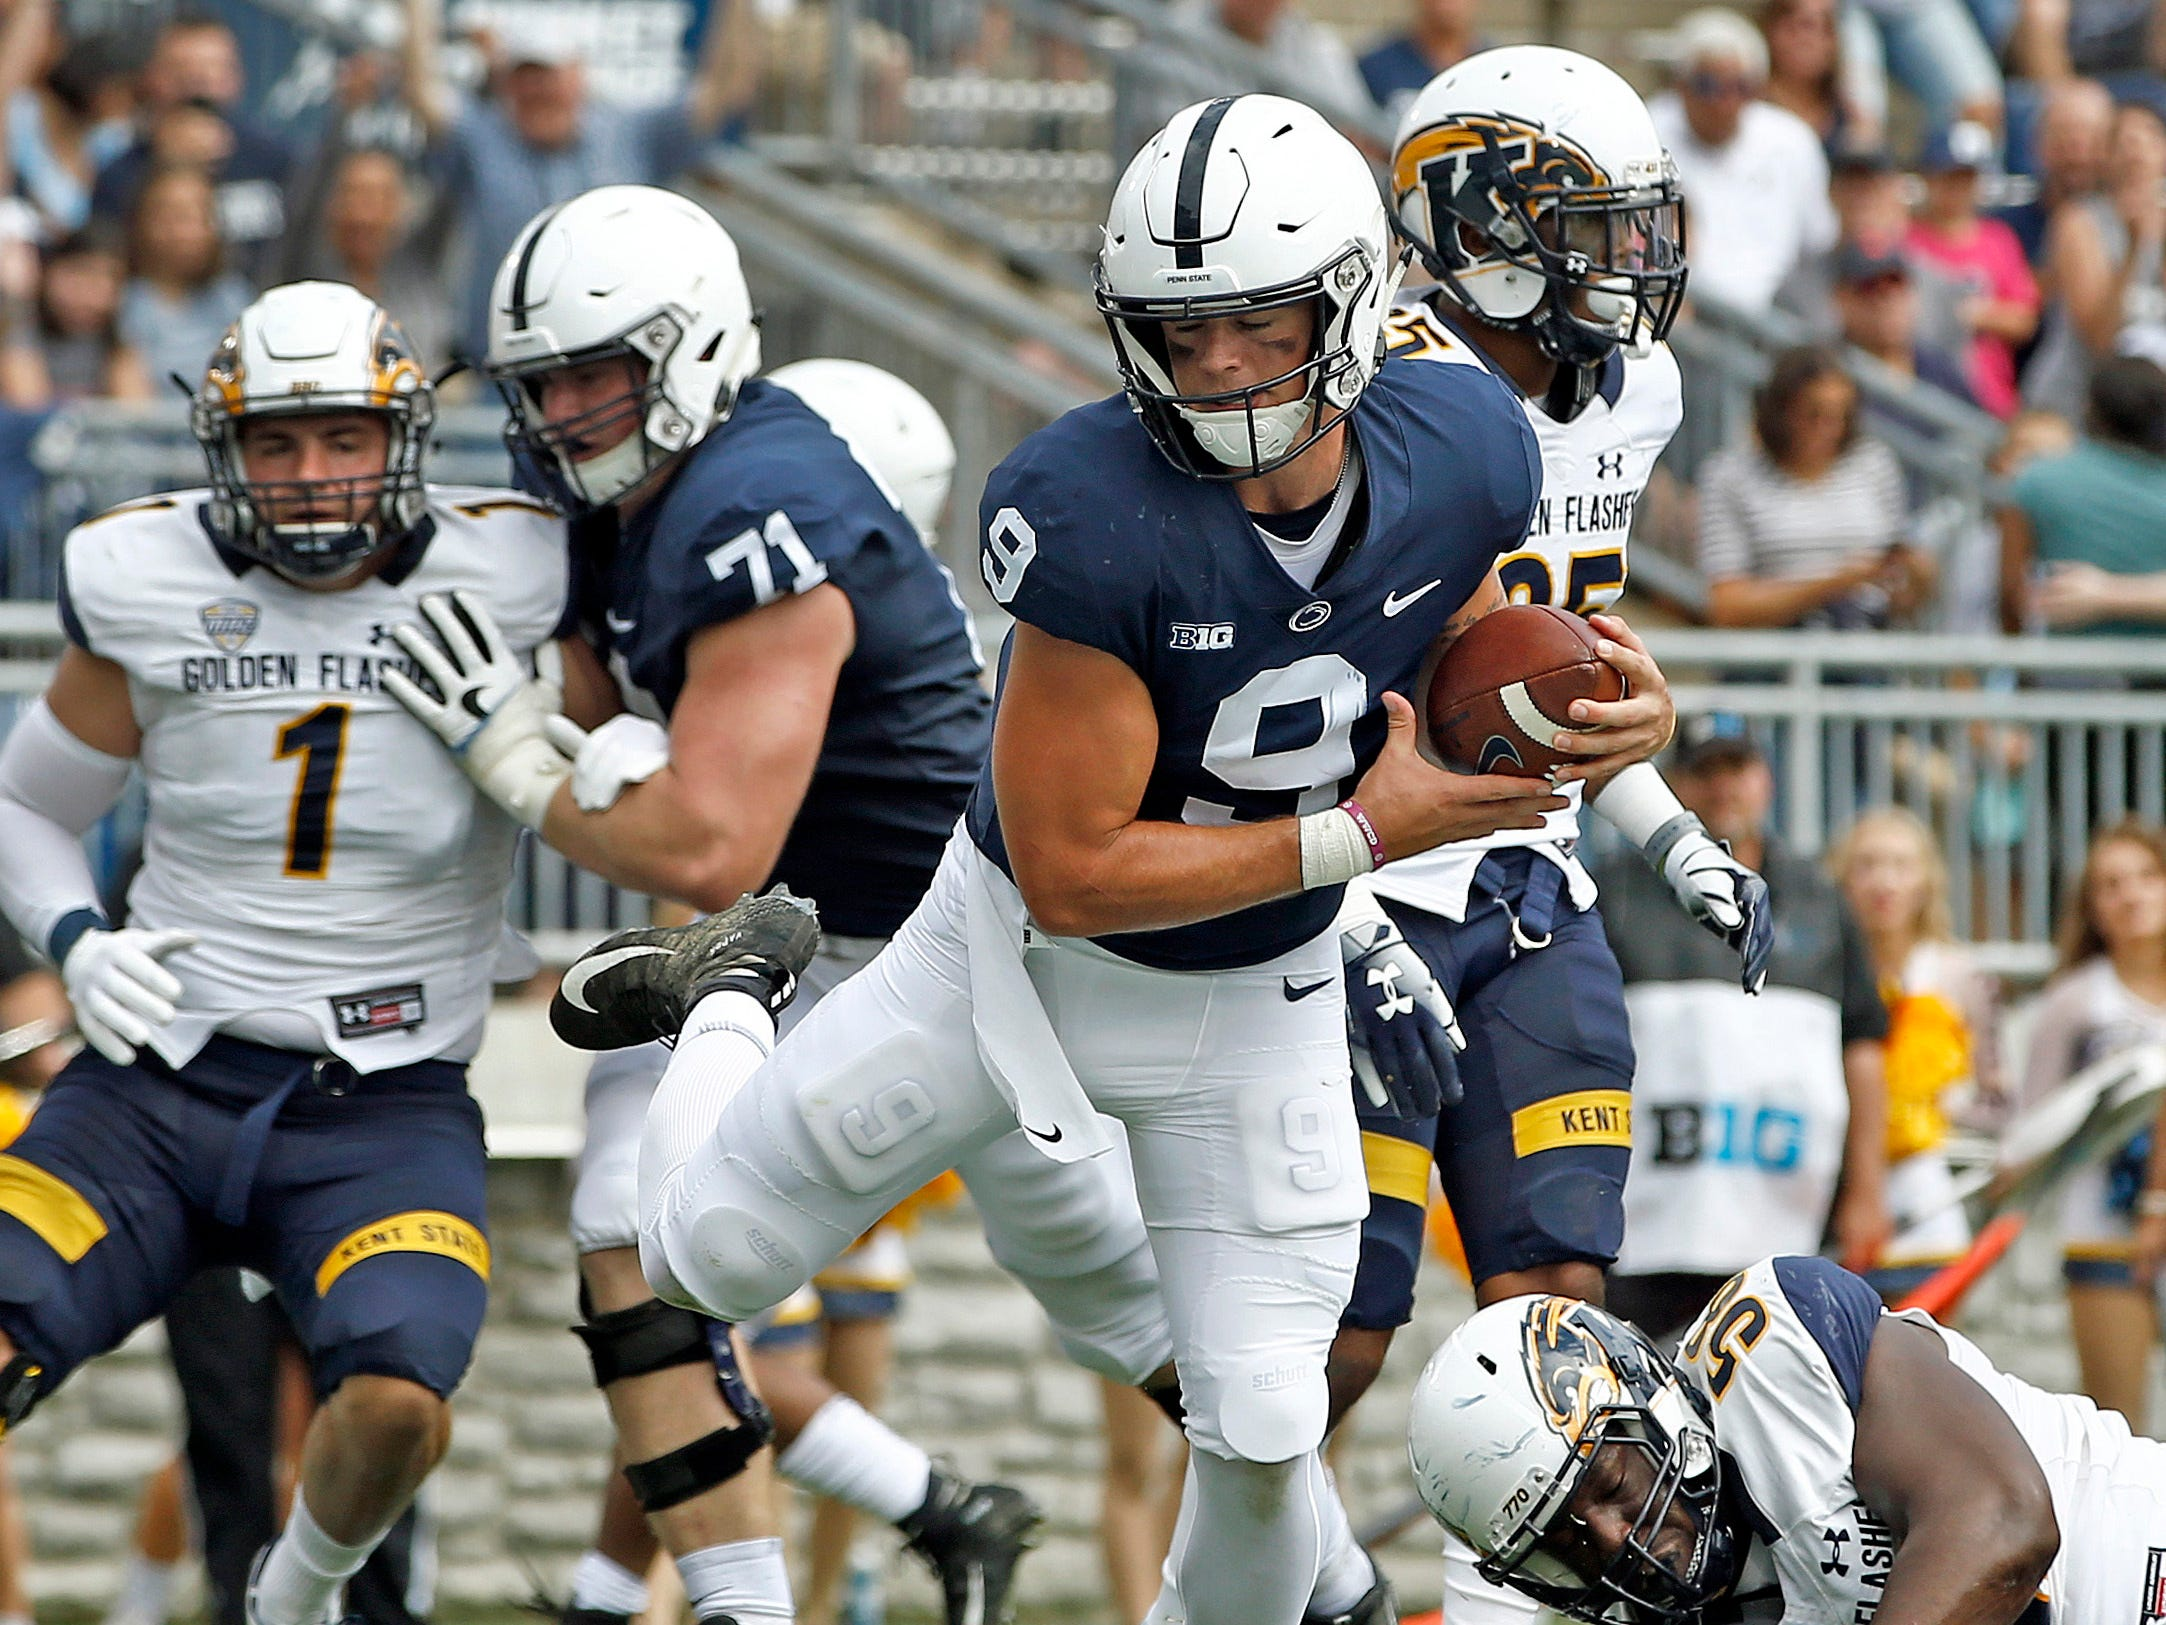 2. Penn State (3-0) – The first-week scare against Appalachian State is well in the rearview mirror after the Nittany Lions crushed Kent State behind five touchdowns from quarterback Trace McSorley, including three rushing. It's time for conference play next as the Nittany Lions take on Illinois before the showdown at home with Ohio State. Last week: 3.